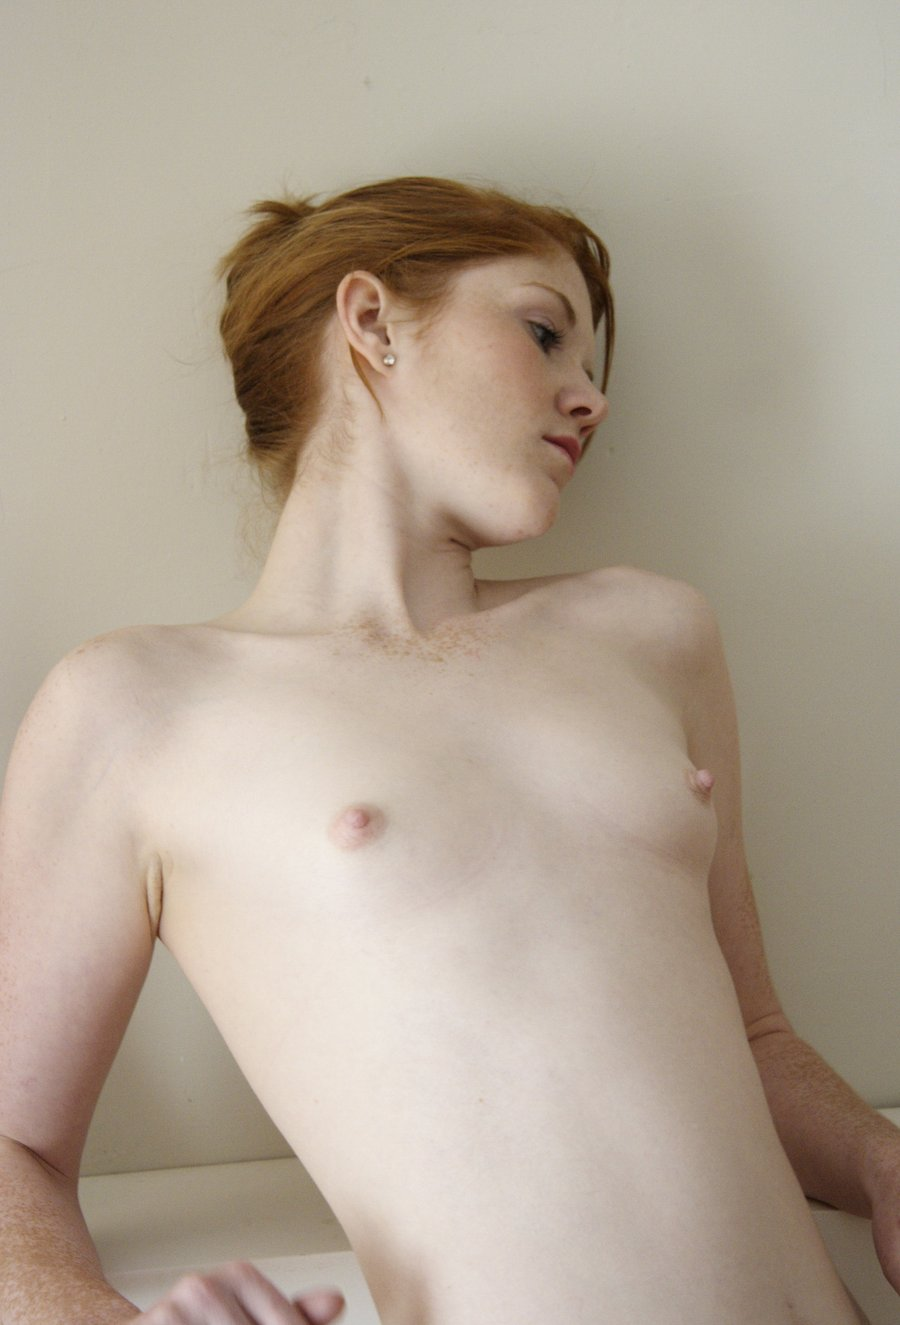 redhead small tits pale girls adult pictures sorted